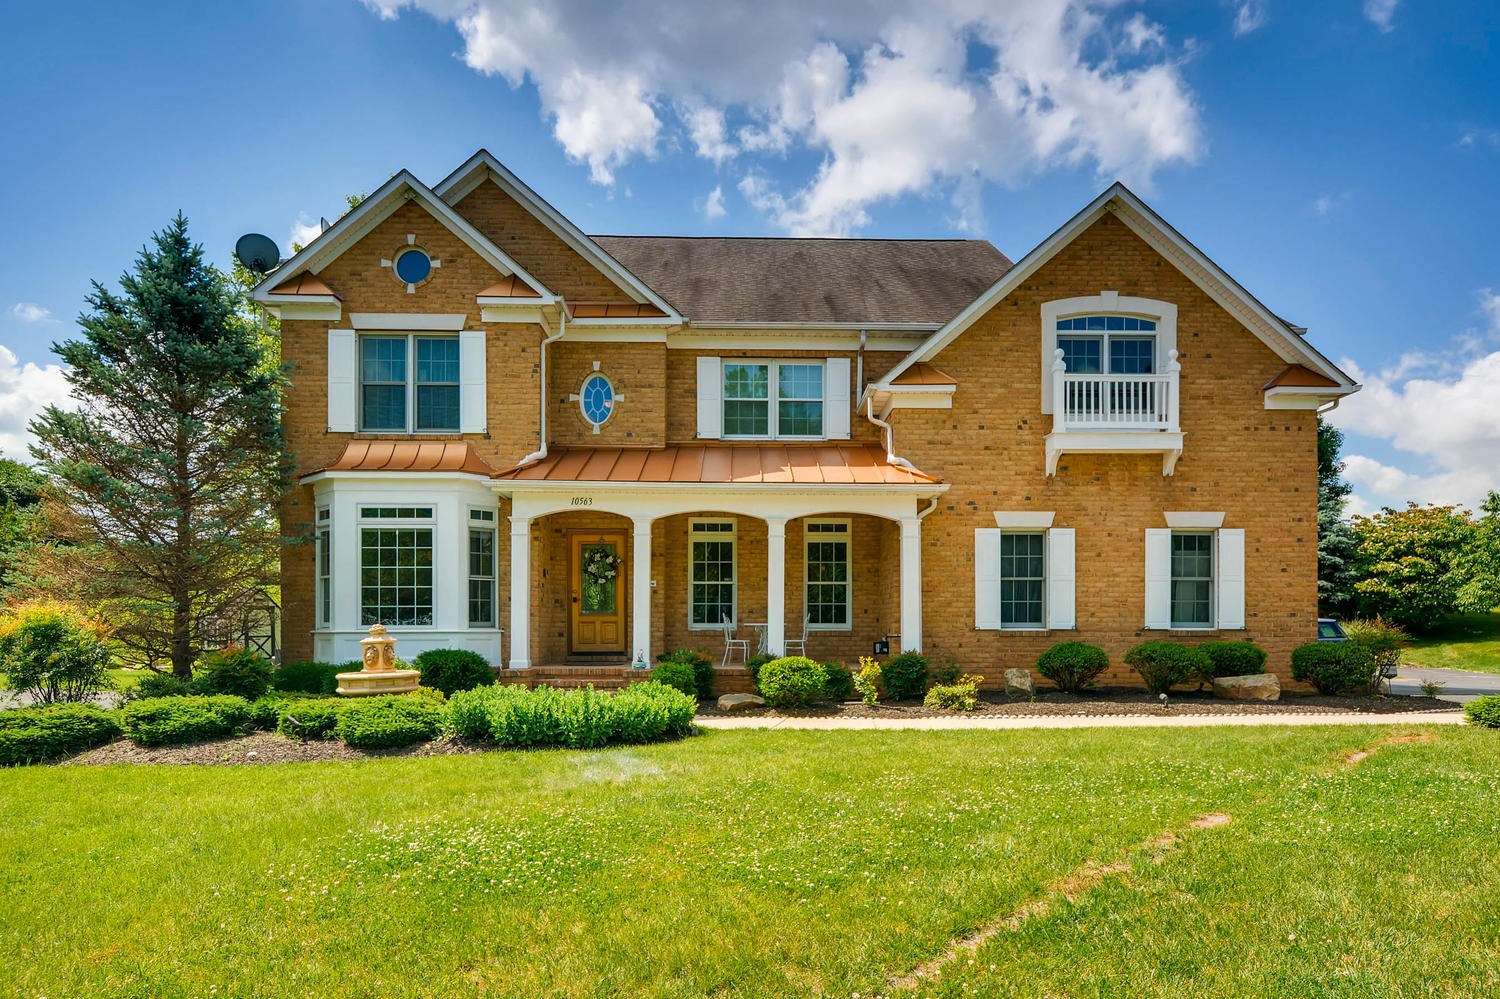 Single Family Home for Rent at Waverly Woods 10563 Dorchester Way Woodstock, Maryland 21163 United States